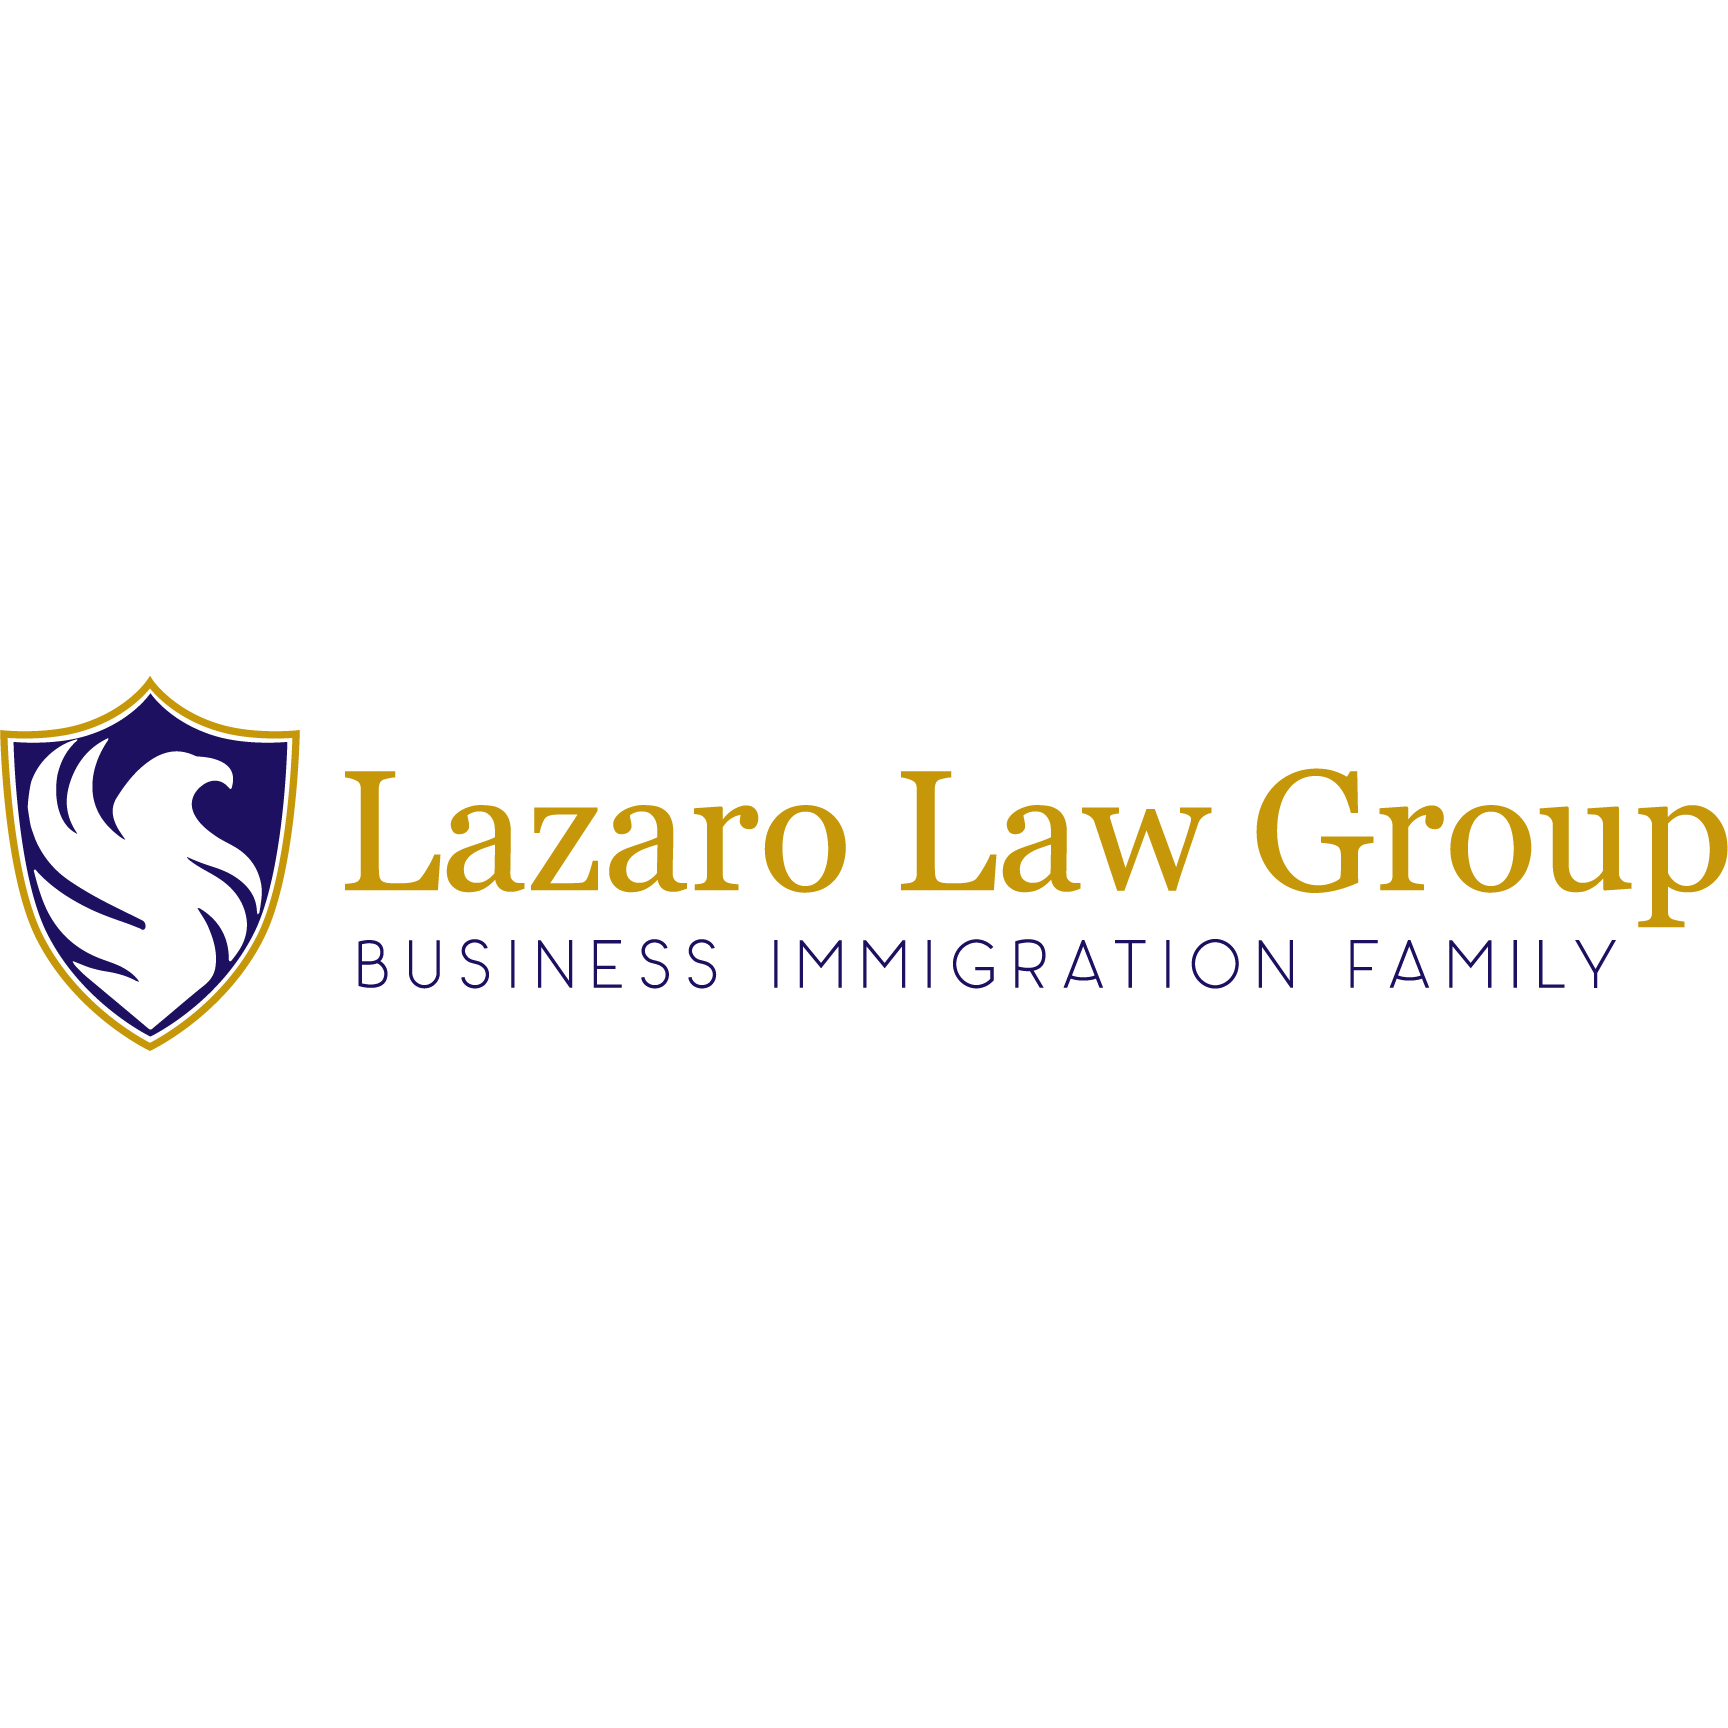 Lazaro Law Group